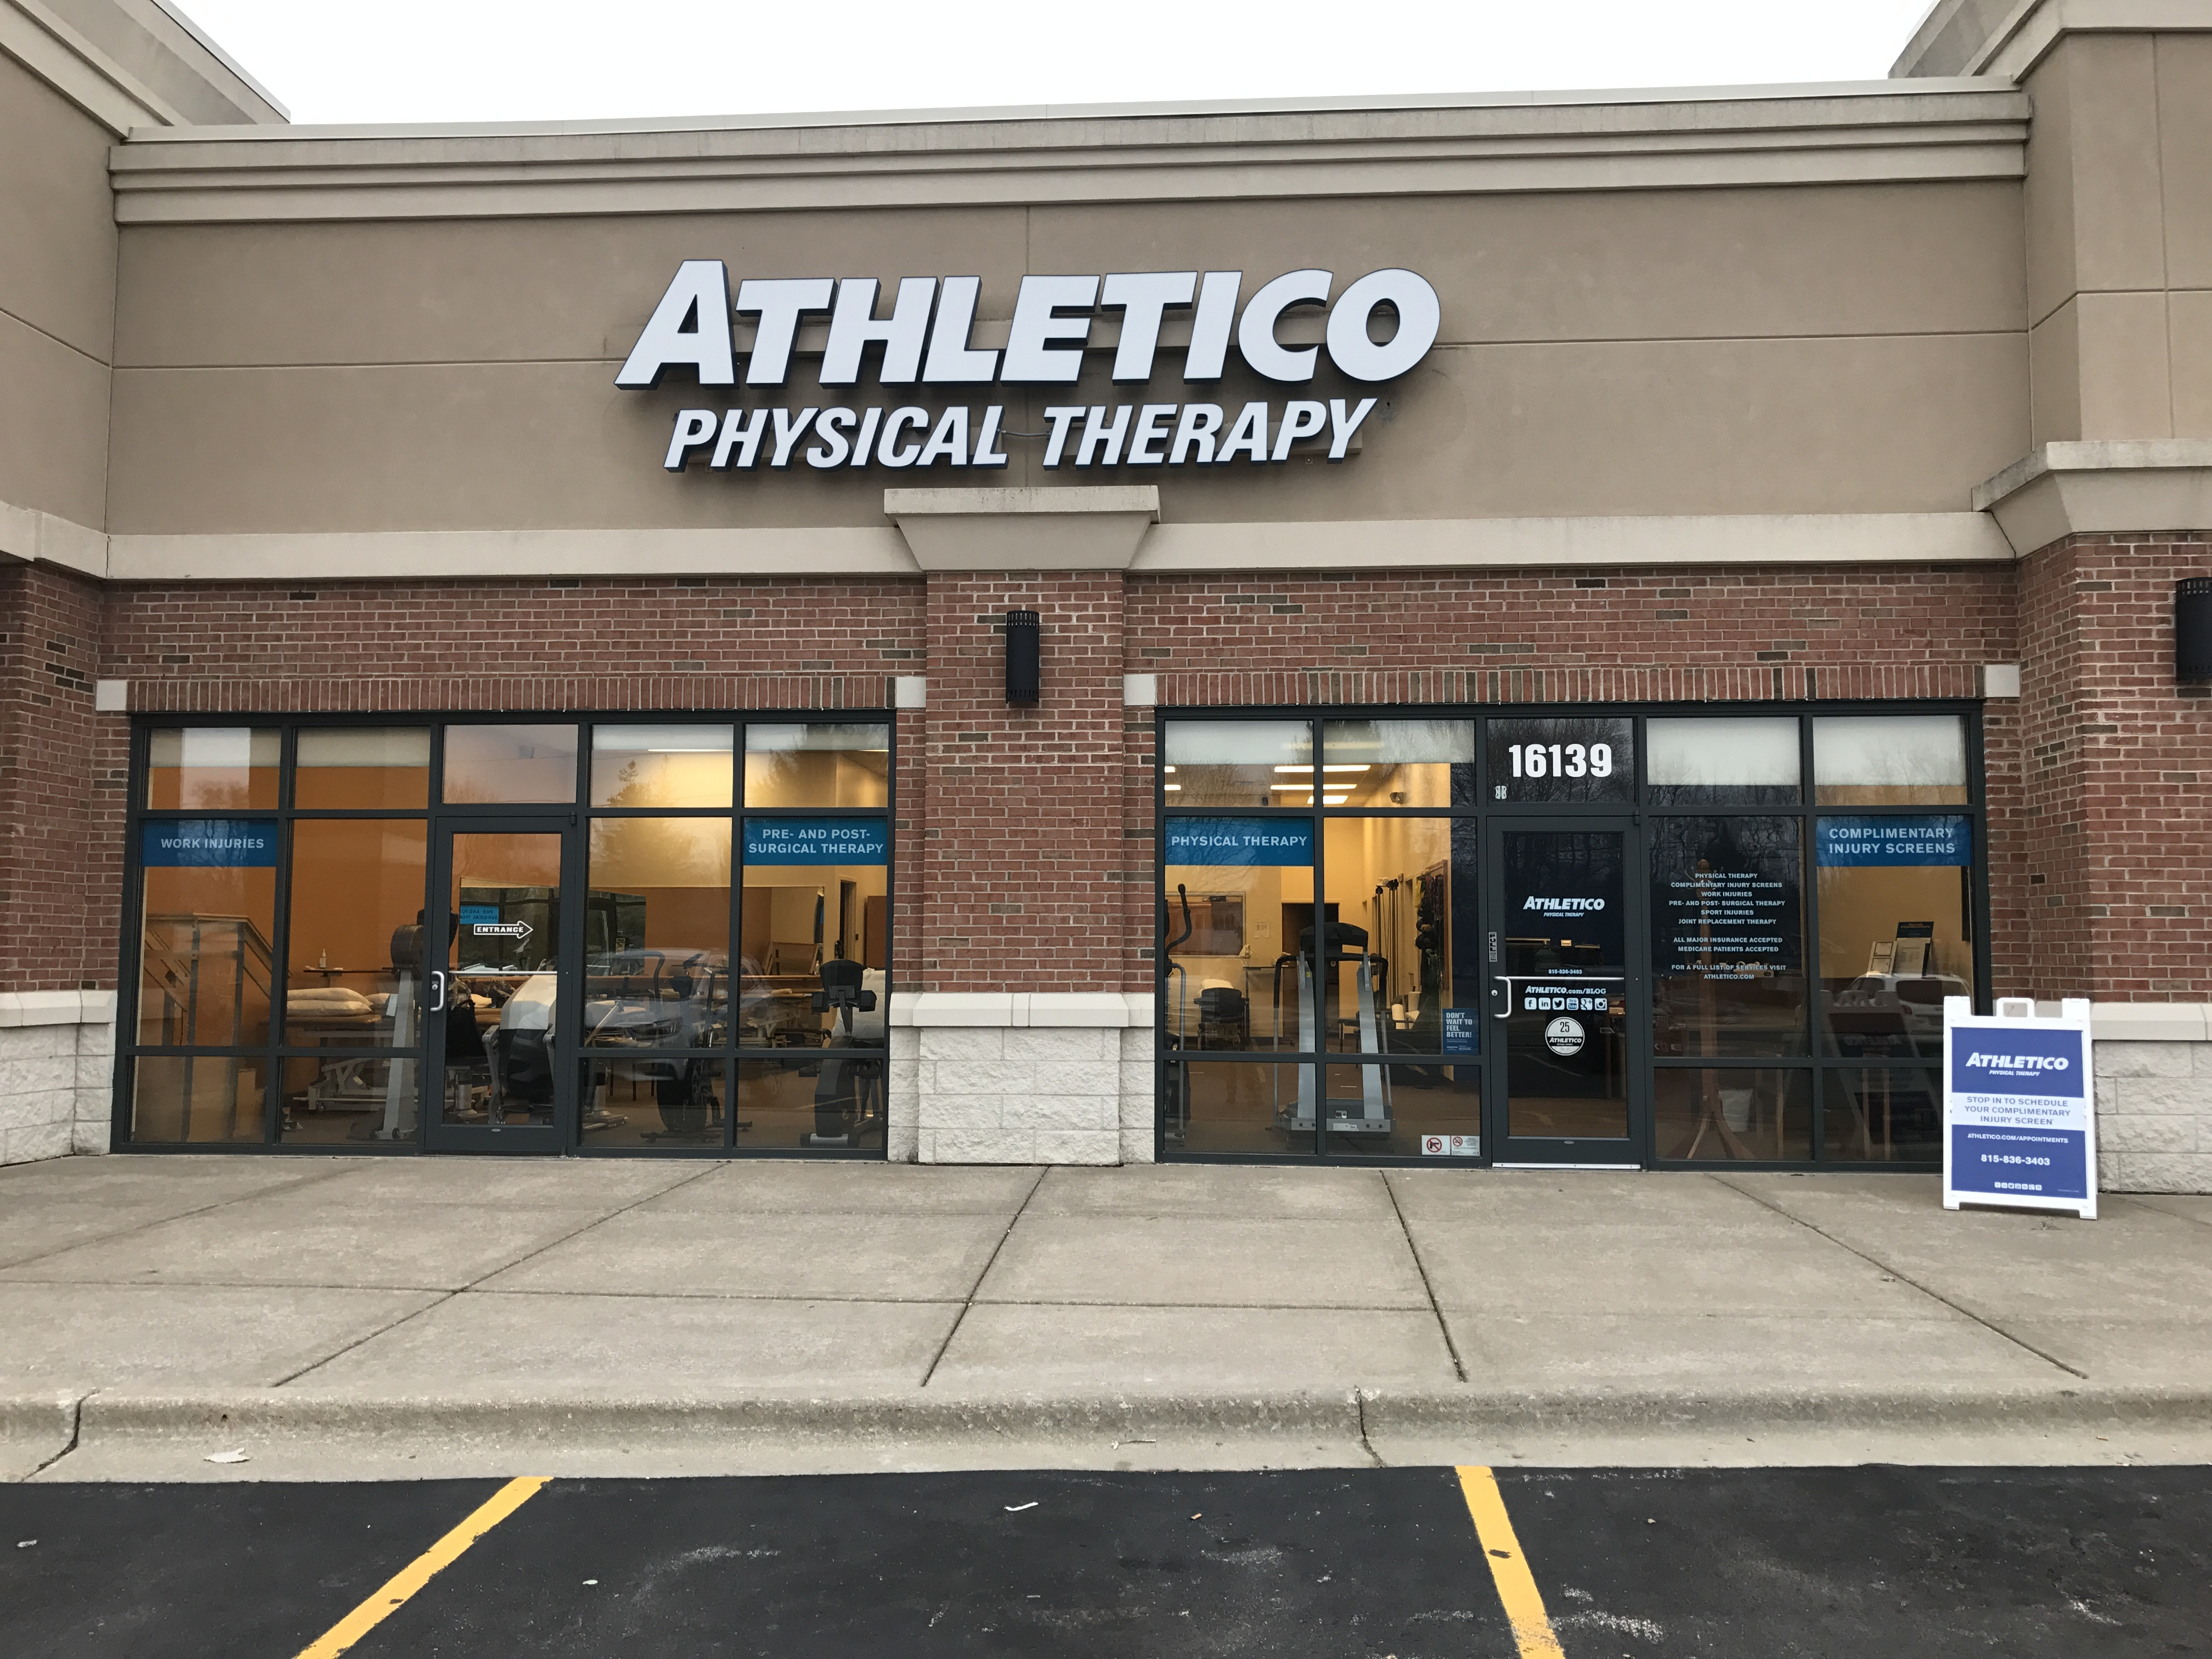 physical therapy in Crest Hill, IL